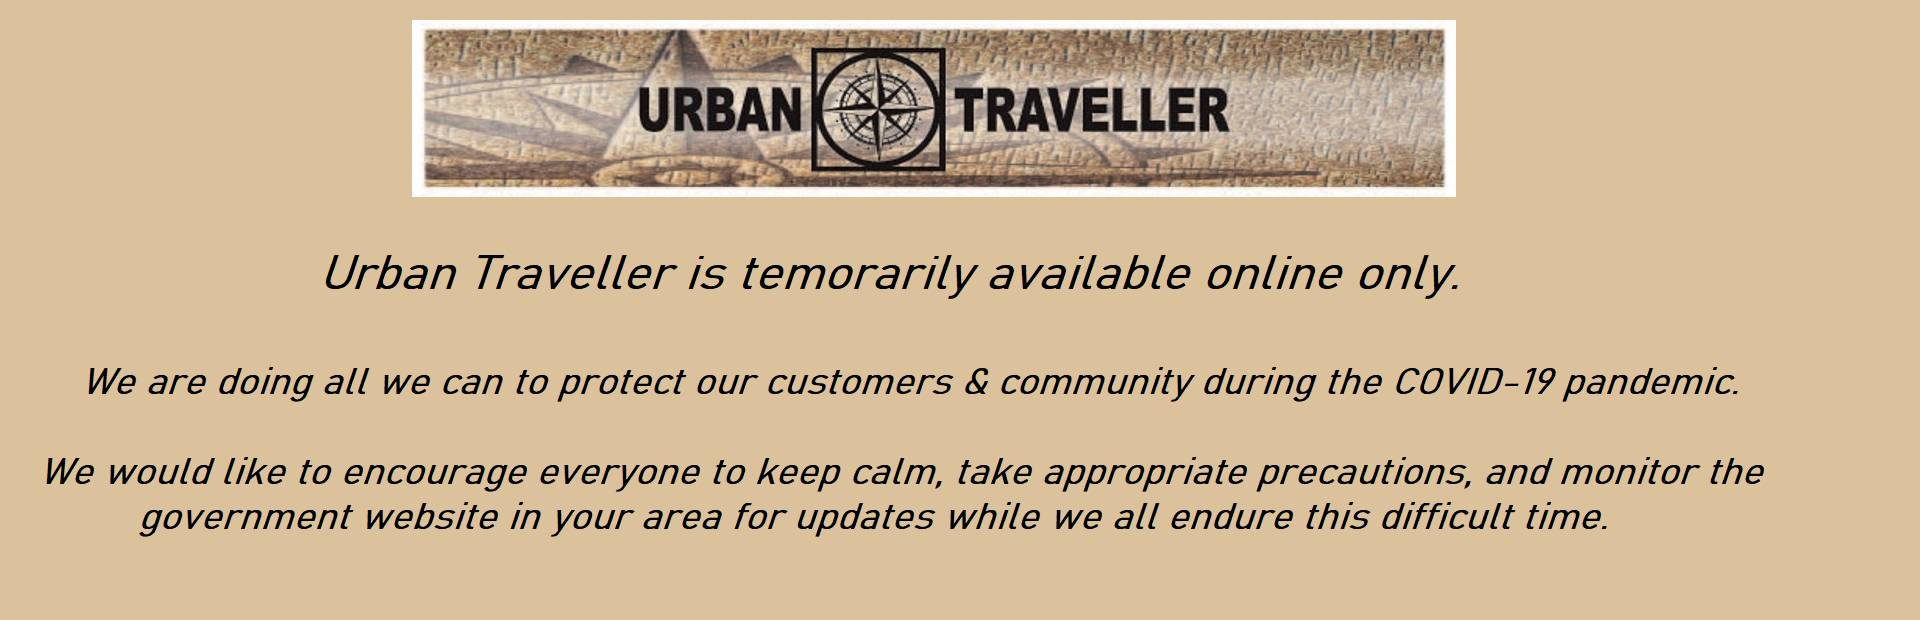 Urban Traveller: Exceptional Luggage & Travel Accessories